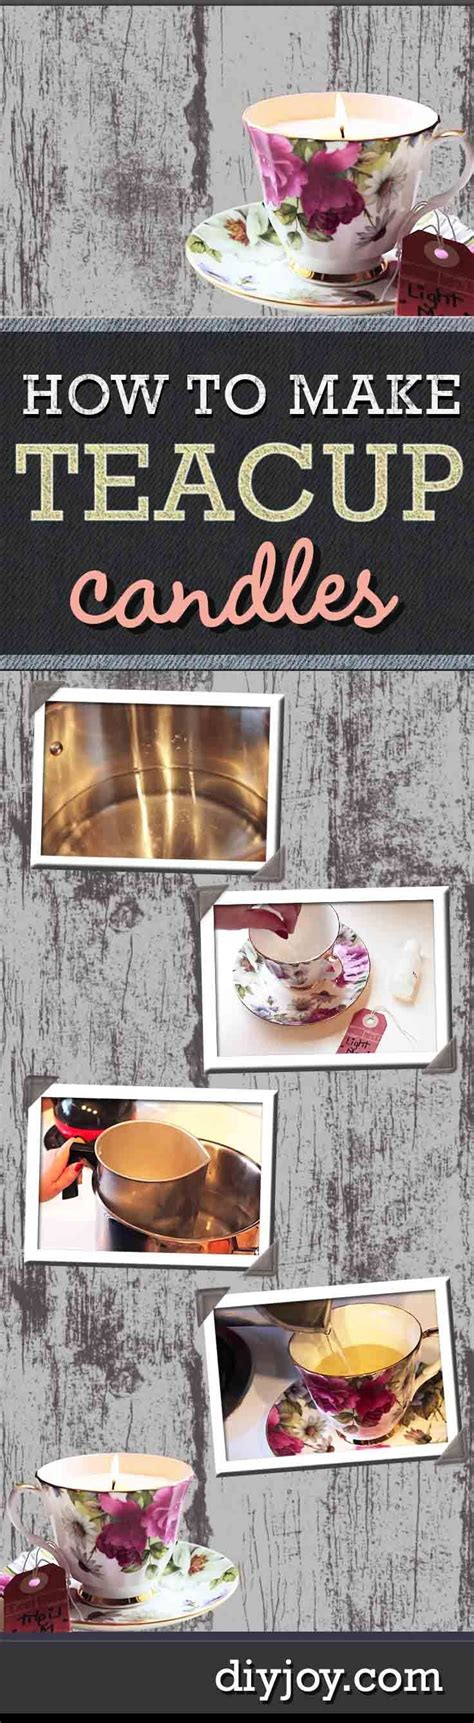 easy home projects for home decor easy diy crafts for the home home decor upcycling ideas